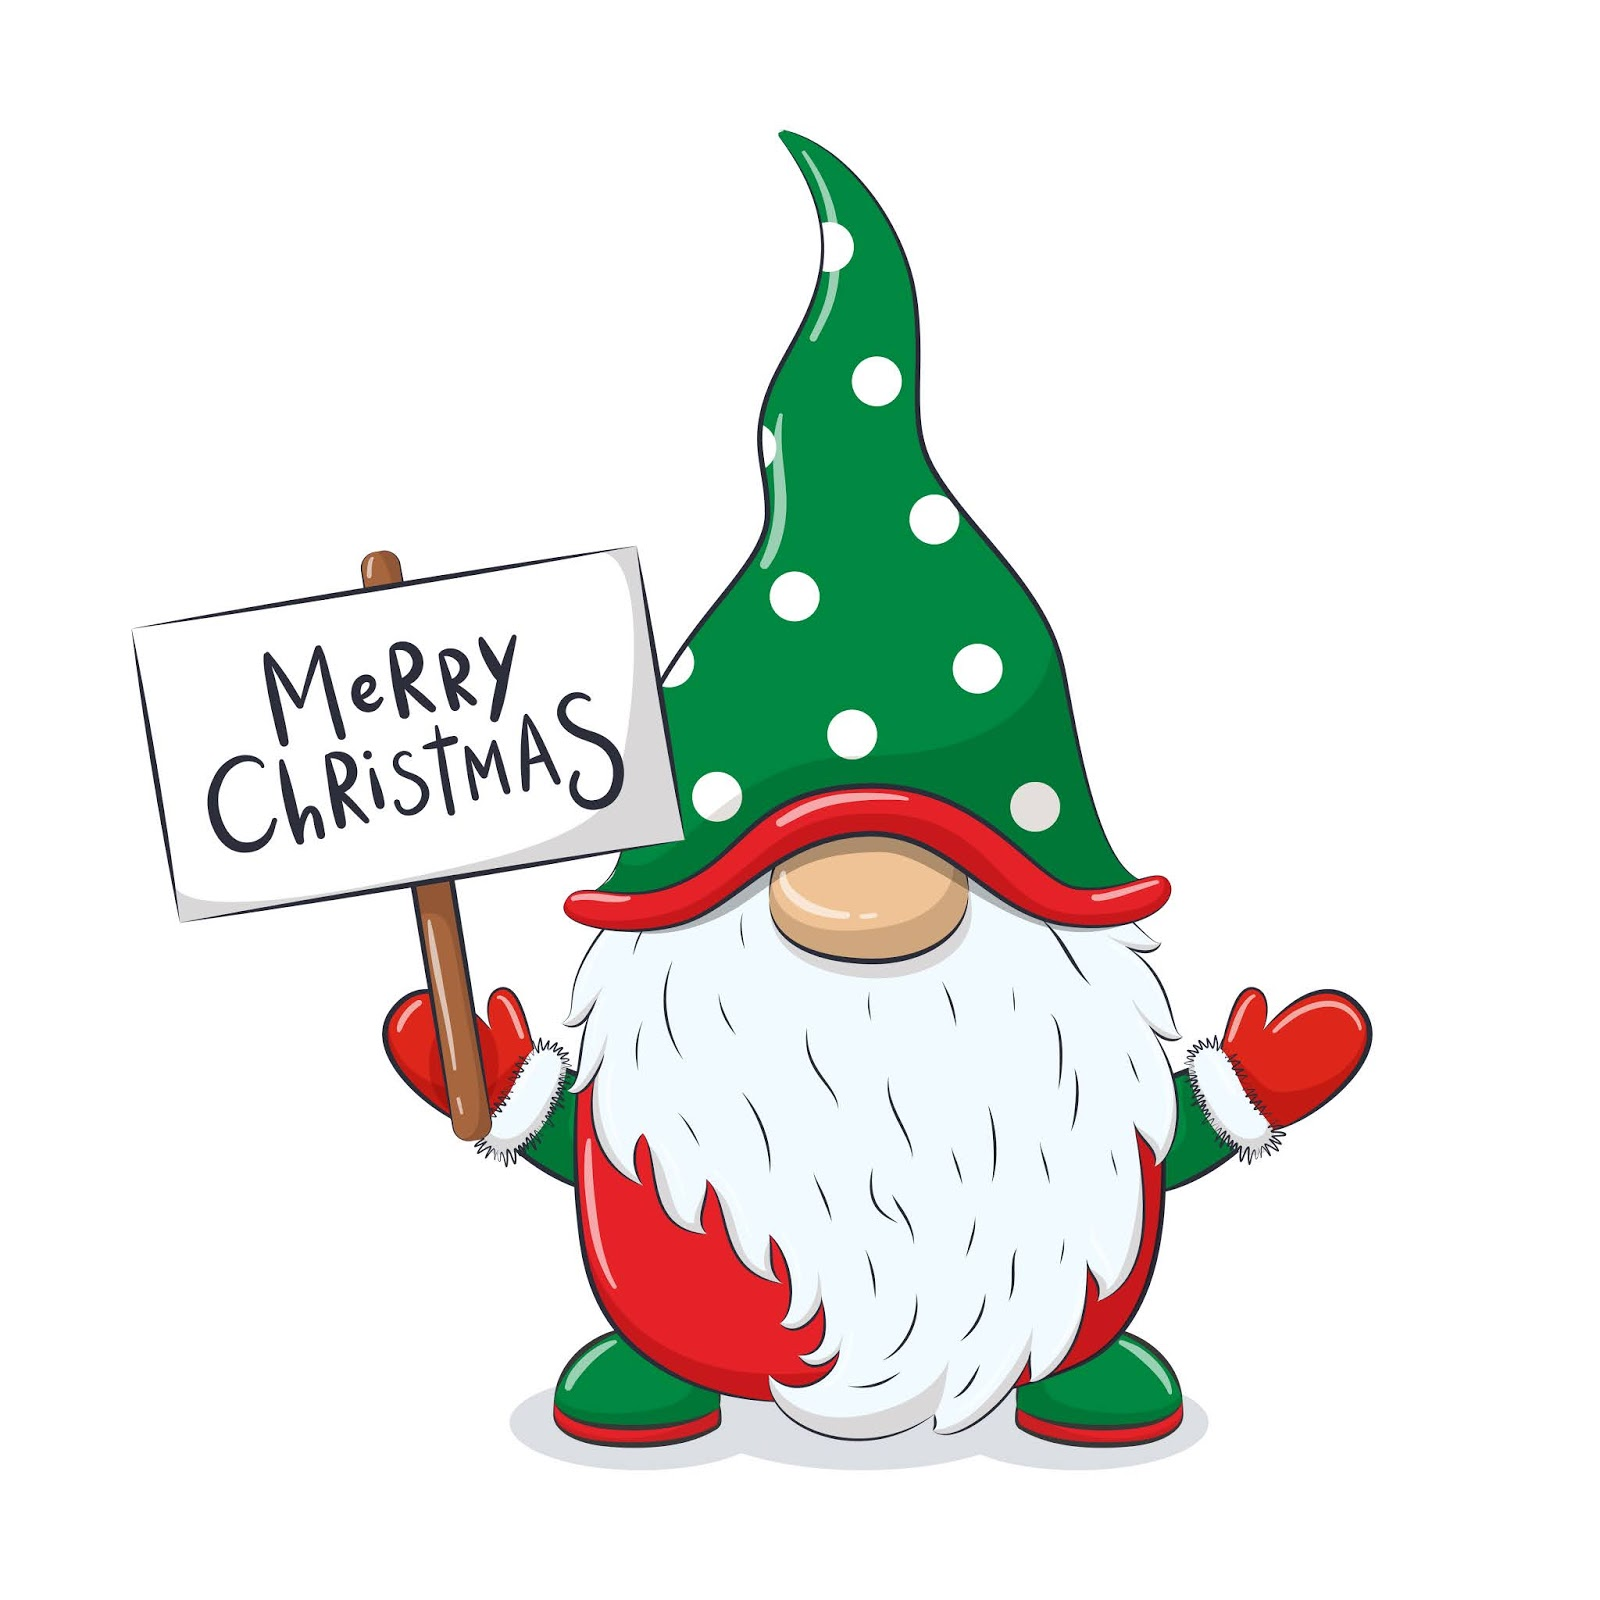 Cute Cheerful Gnome With Phrase Merry Christmas Free Download Vector CDR, AI, EPS and PNG Formats